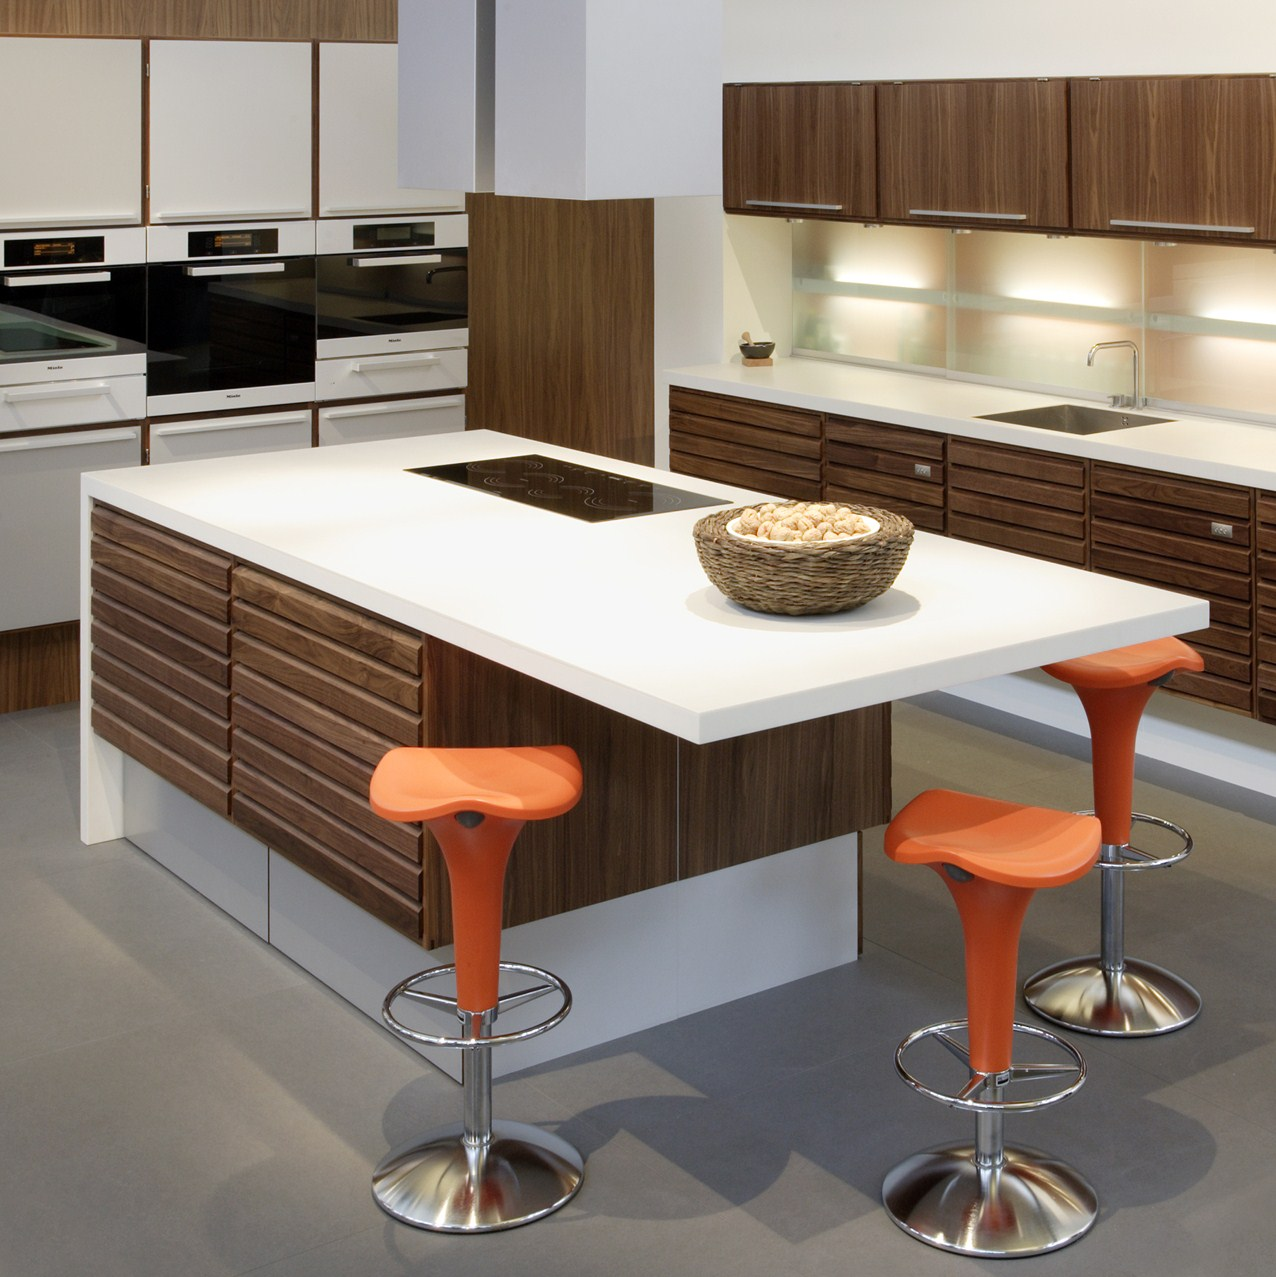 Outstanding Corian Kitchen Worktop 1276 x 1277 · 281 kB · jpeg